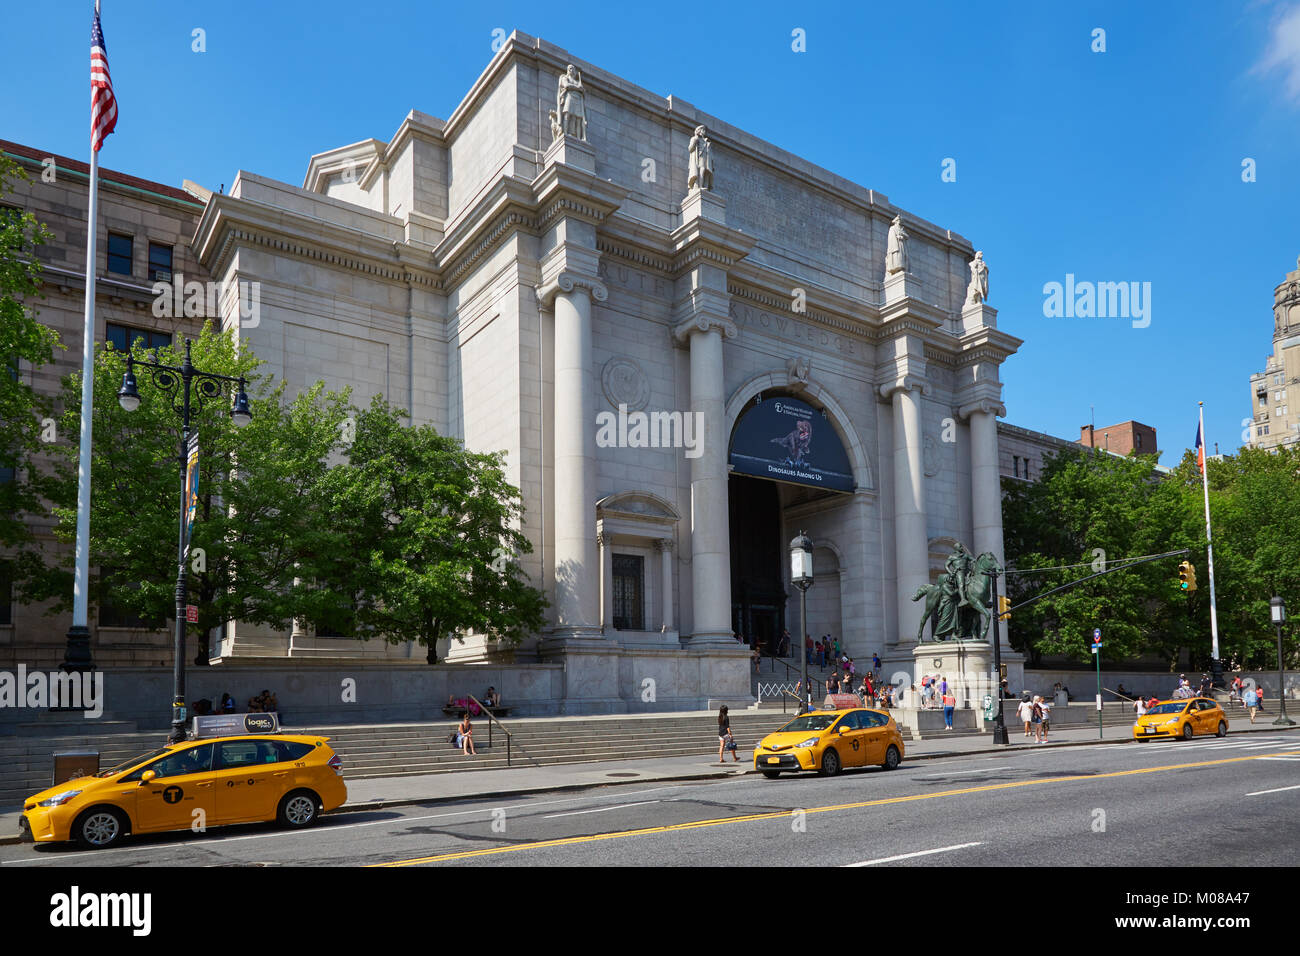 American Museum of Natural History building facade with people and yellow taxi in a sunny day, blue sky in New York - Stock Image